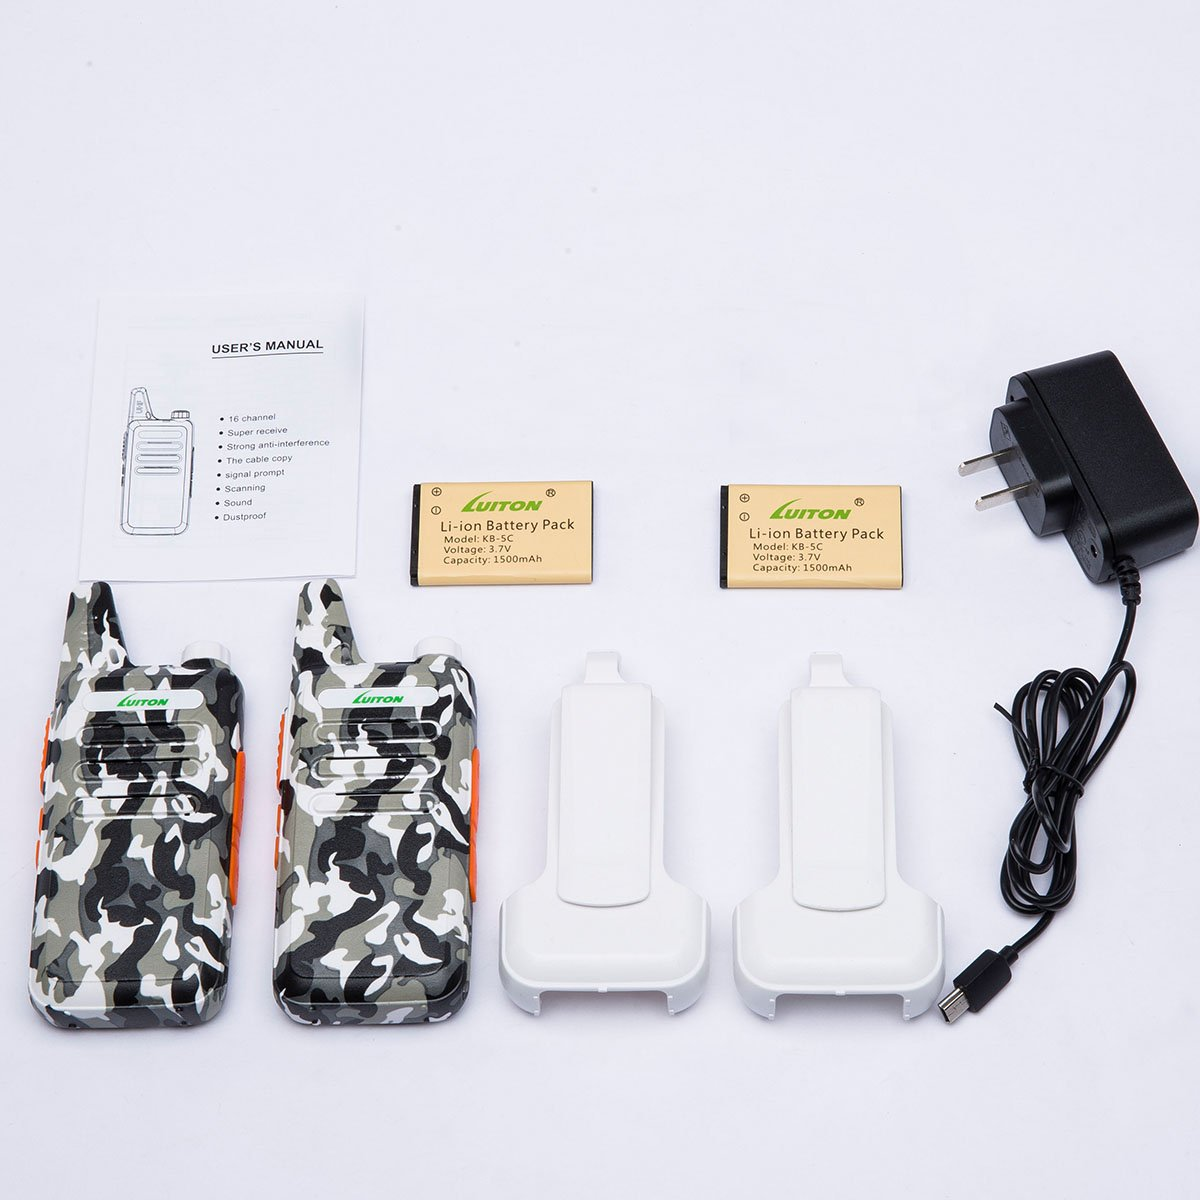 2 Way Radio Walkie Talkies Long Range for Outdoor Camping Hiking Hunting Activities LT-316 Military Camo Mini Uhf Rechargeable Two-Way Radio 5-10 Miles Back to School Ideal Gifts by LUITON (2 Pack) by LUITON (Image #6)